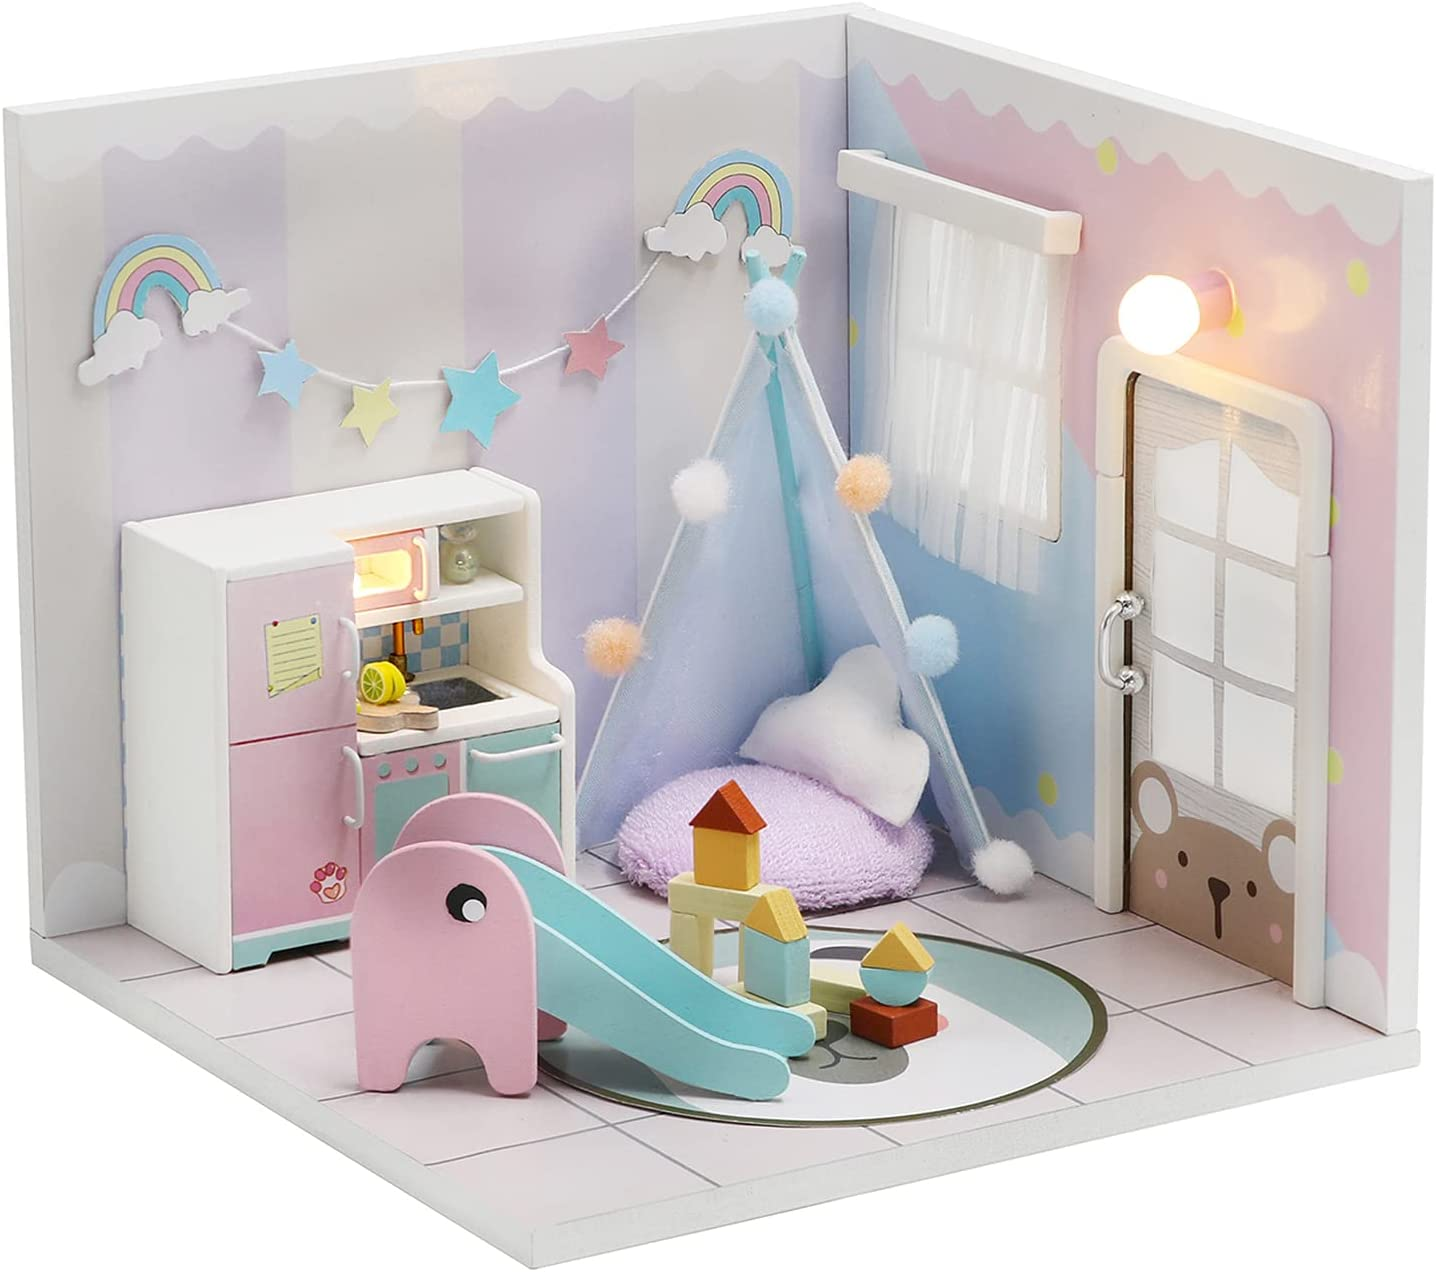 HETOMI DIY Dollhouse Miniature Outlet ☆ Free Shipping Kit Mini House Furniture with Max 84% OFF 3D